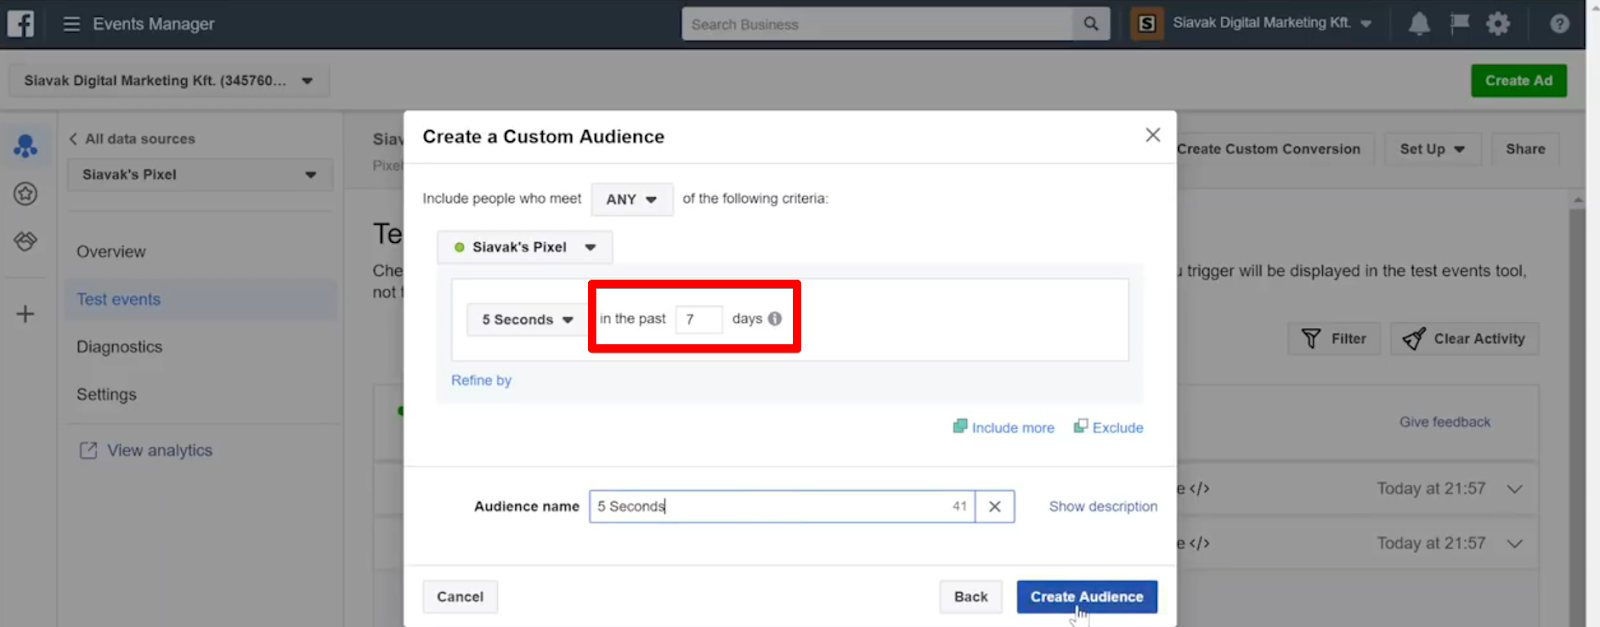 Create a custom audience of users who stayed for longer than five seconds in the past week by selecting for 5 Seconds delayed pixel events that fired in the past 7 days